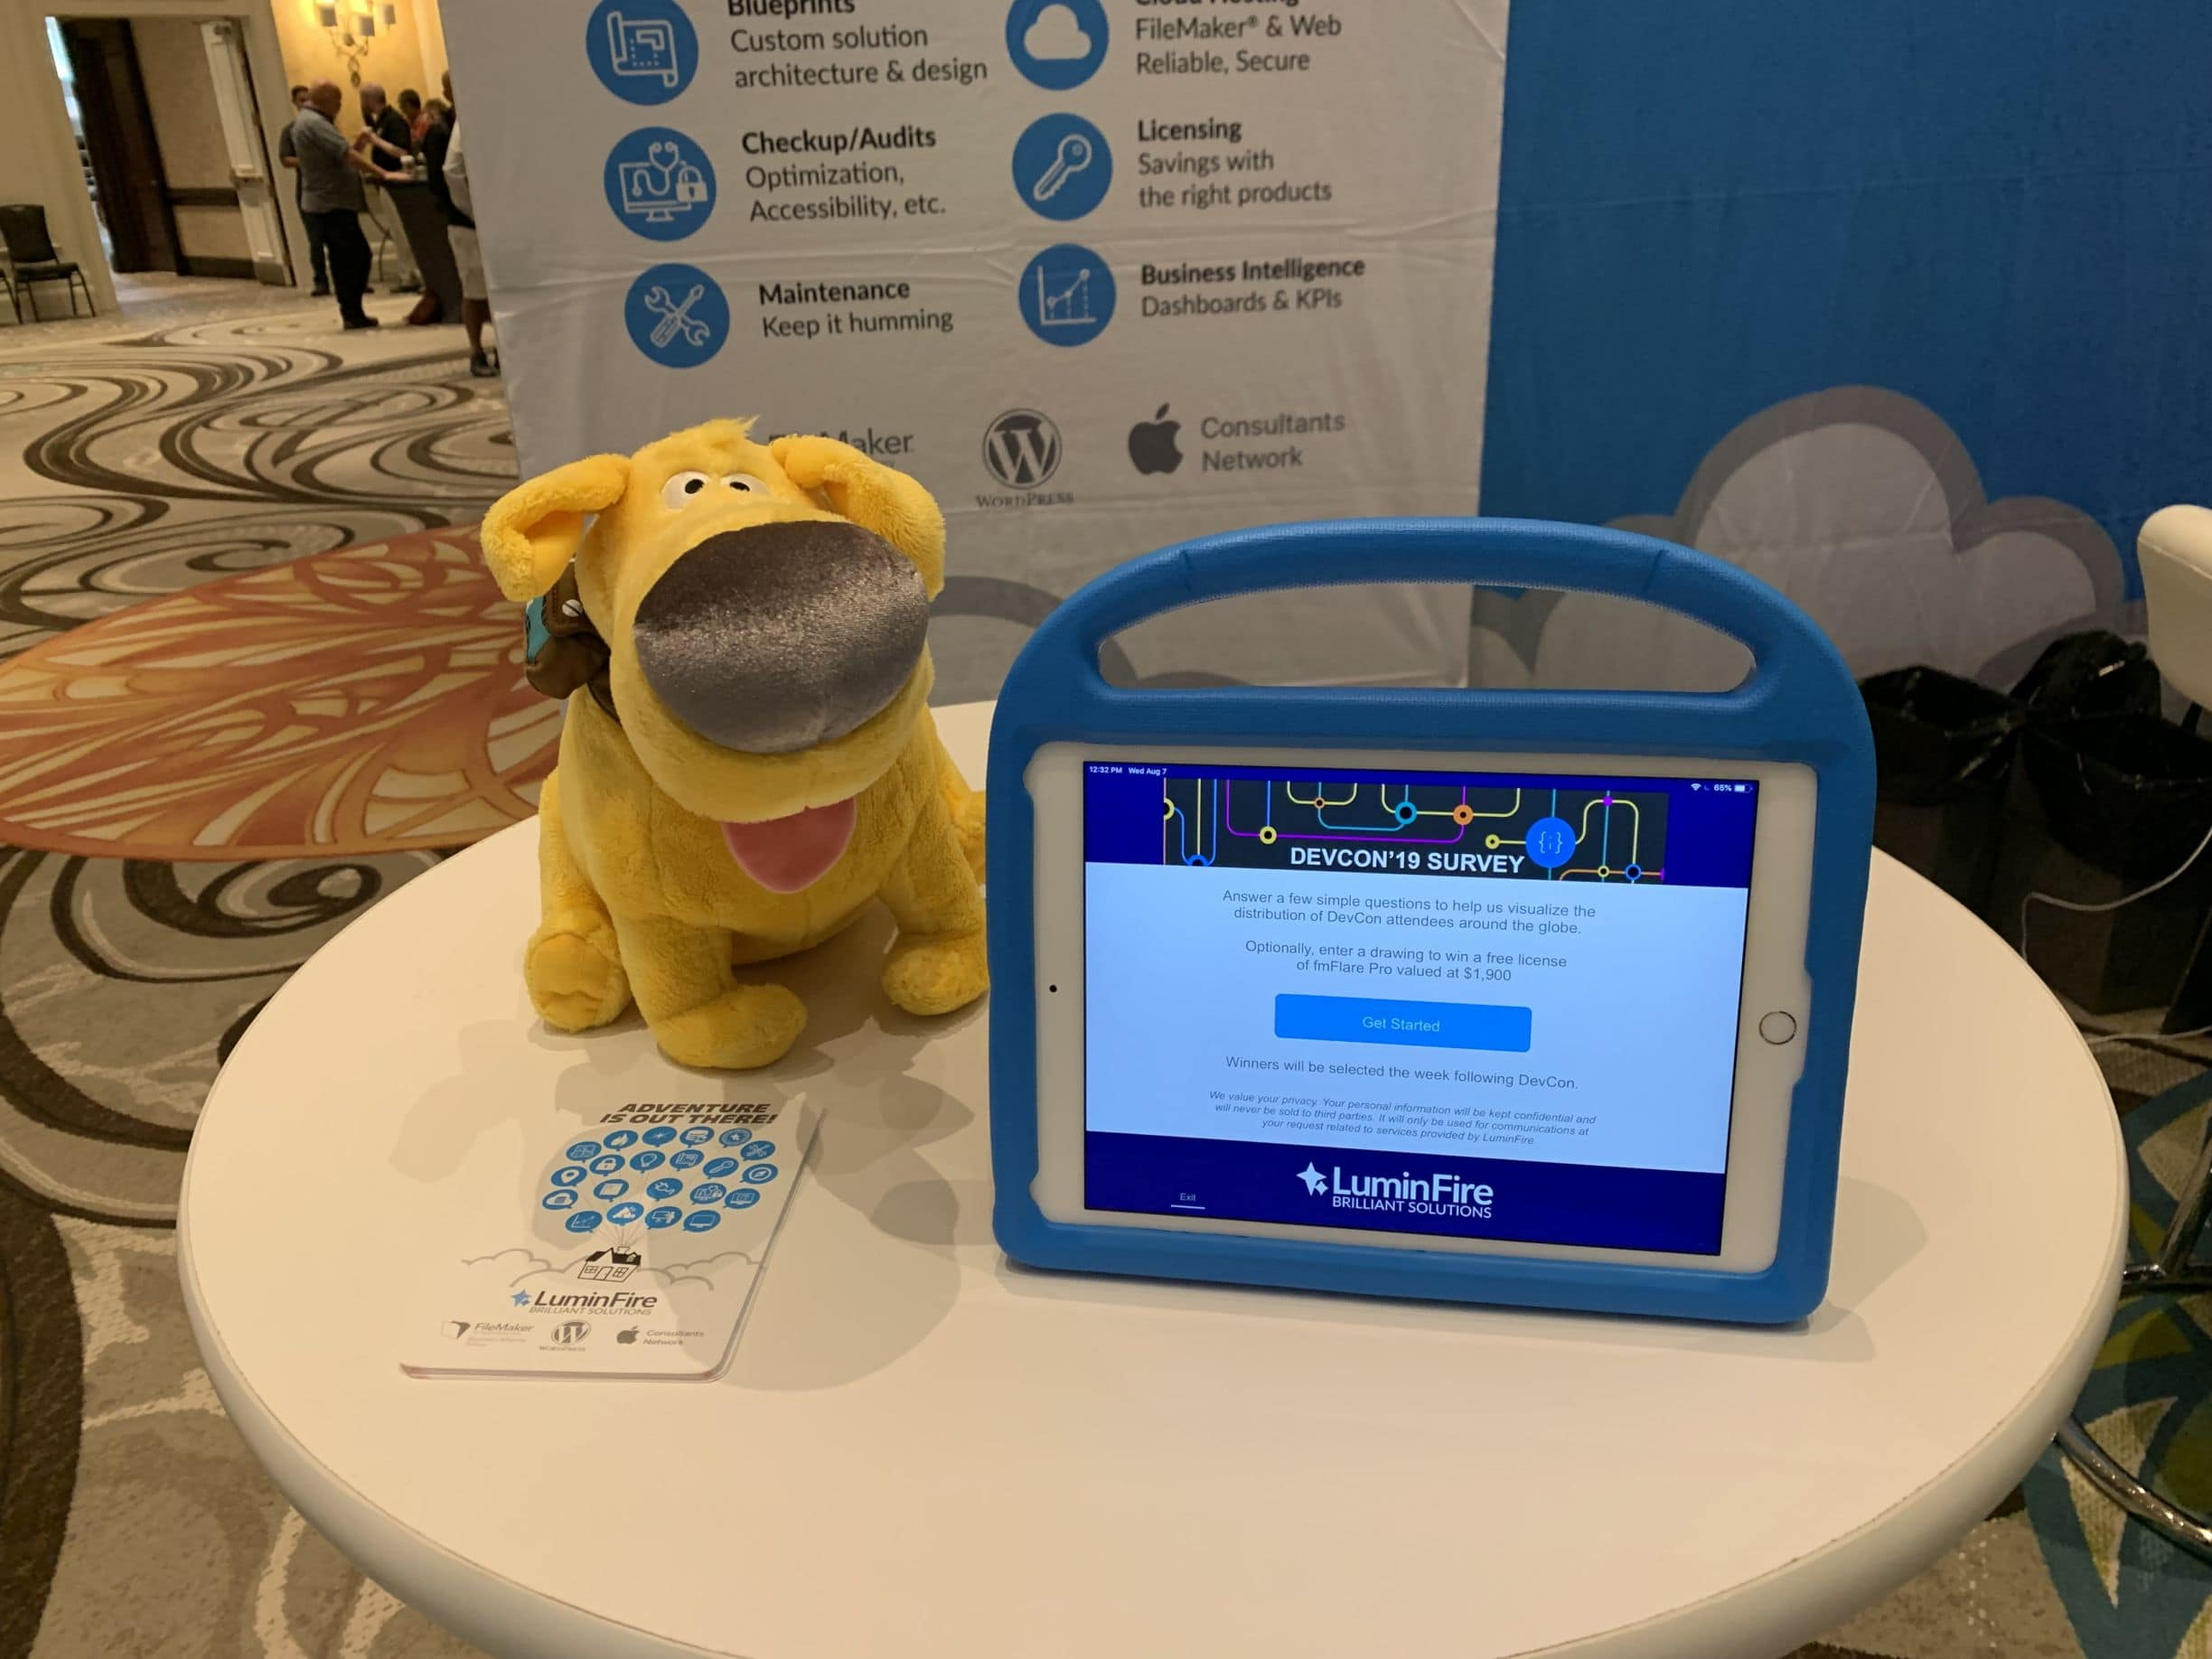 FileMaker DevCon 2019 Review - Anything Is Possible - LuminFire